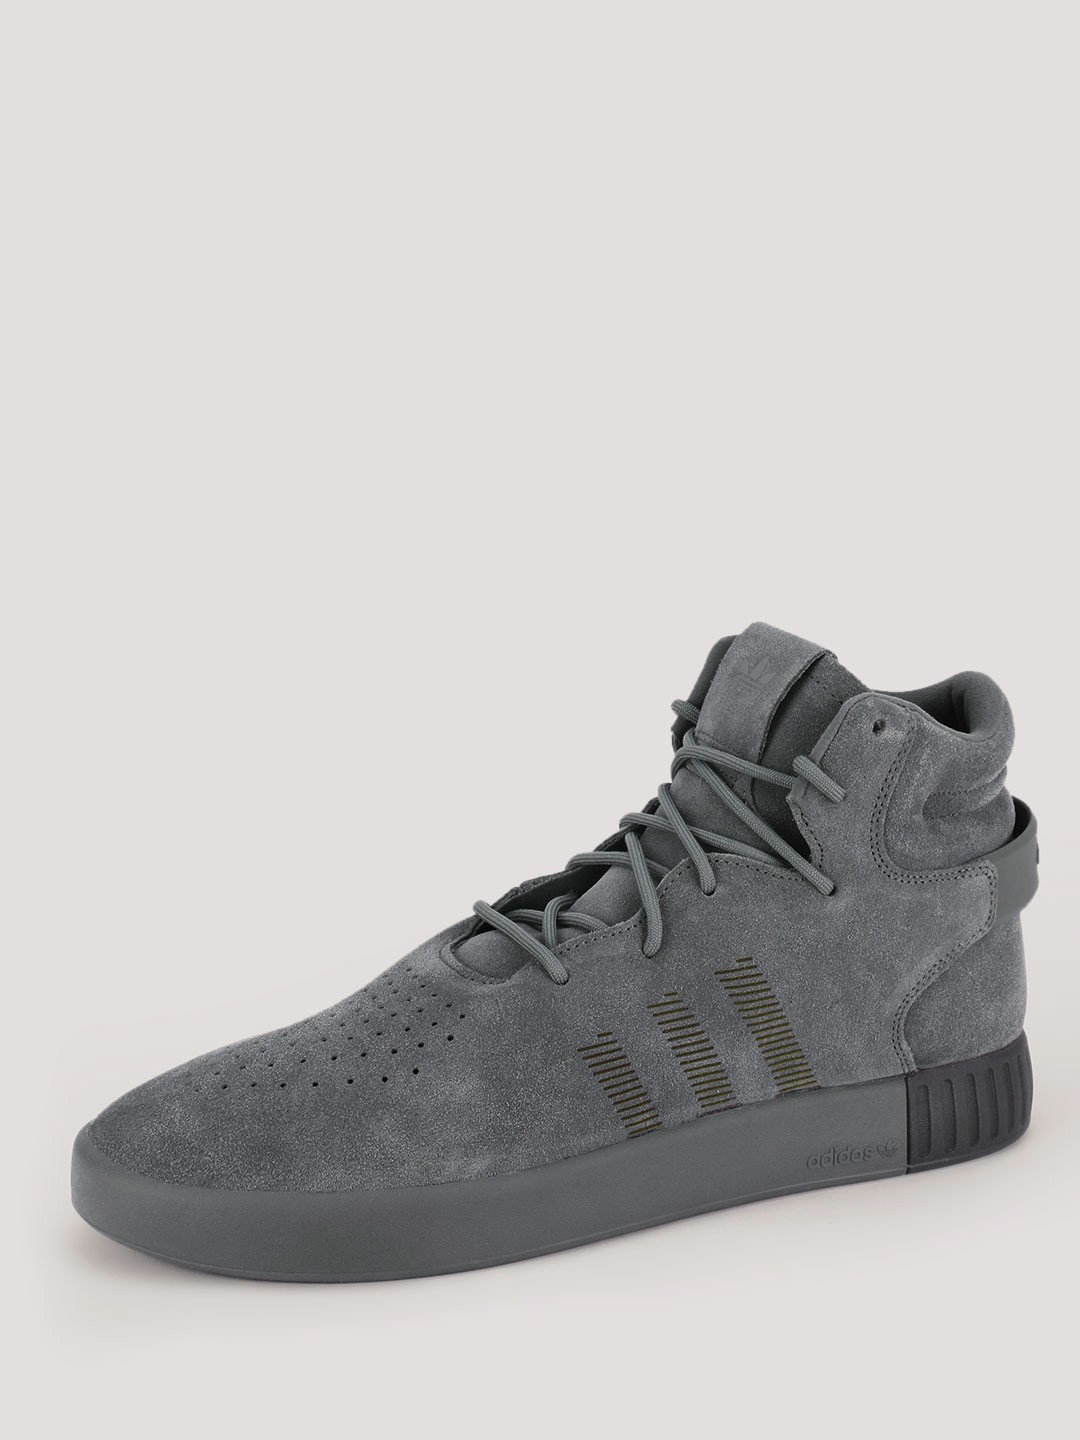 premium selection d1c09 bf069 Buy Adidas Originals Black/Onyx Tubular Invader Shoes for ...